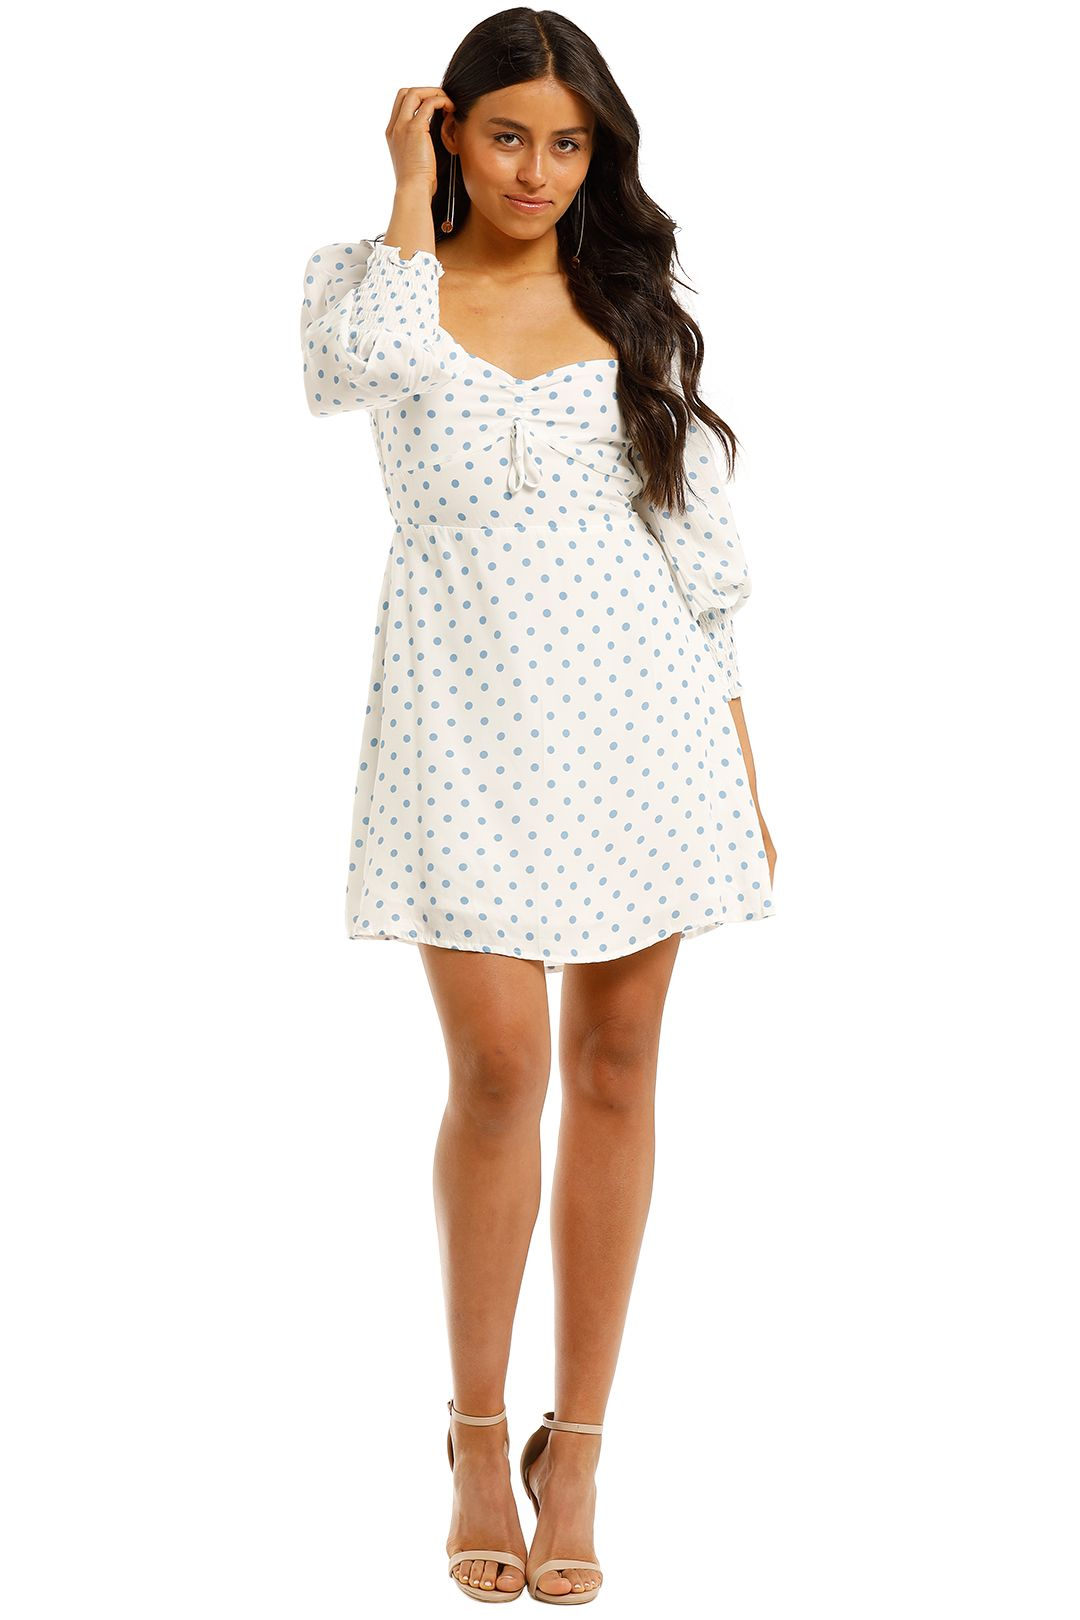 Faithfull-Arianne-Sleeve-Mini-Dress-Front